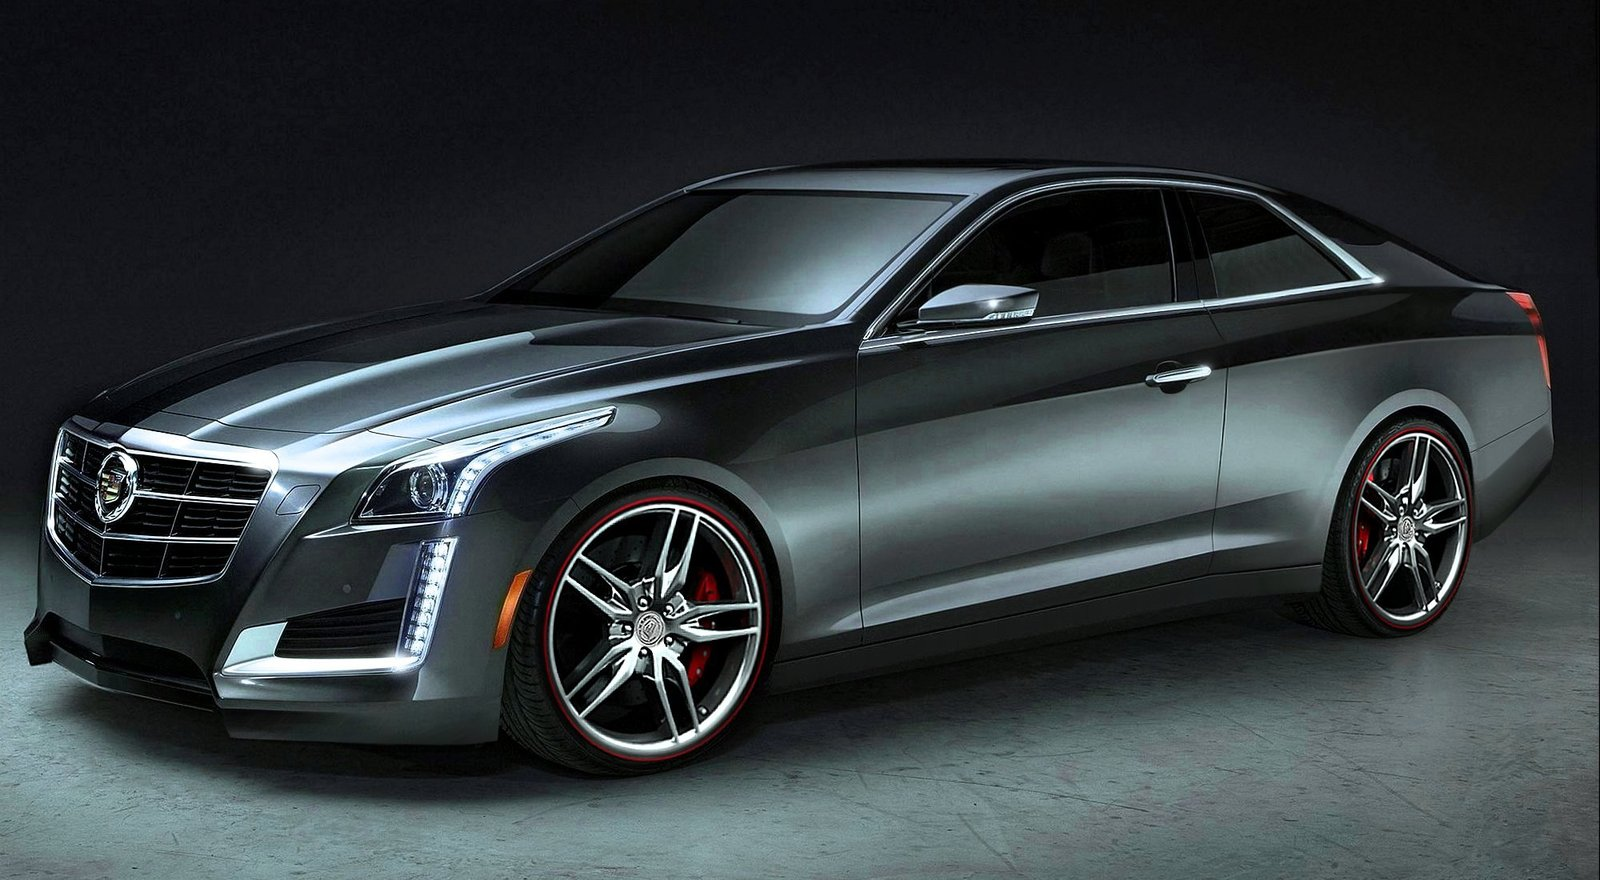 2015 Cadillac Cts-v Coupe #17